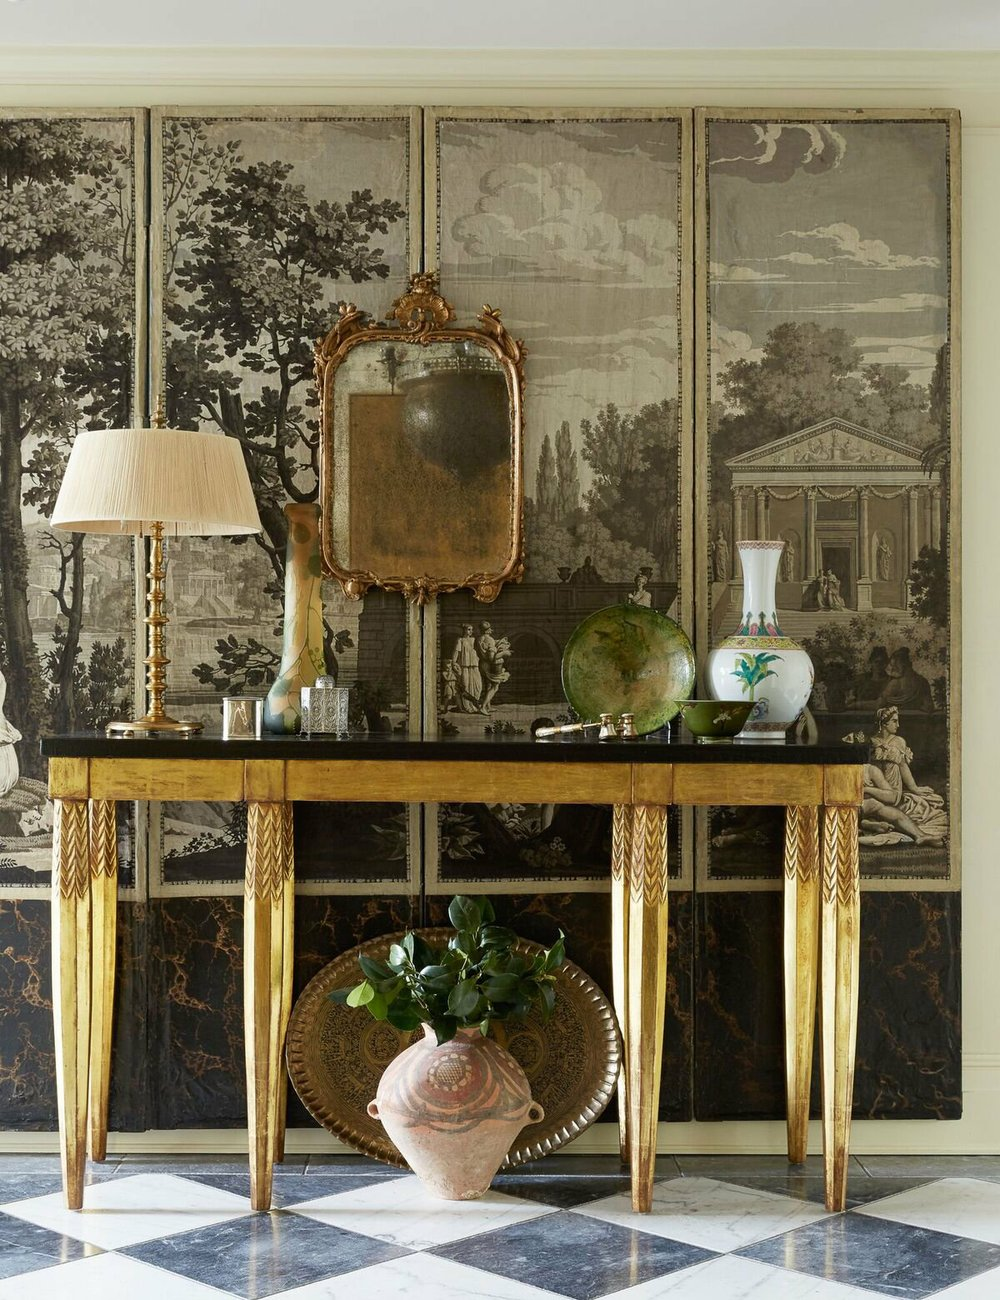 A room designed by Mona Hajj using a decorative screen. (Photo by William Abranowicz)